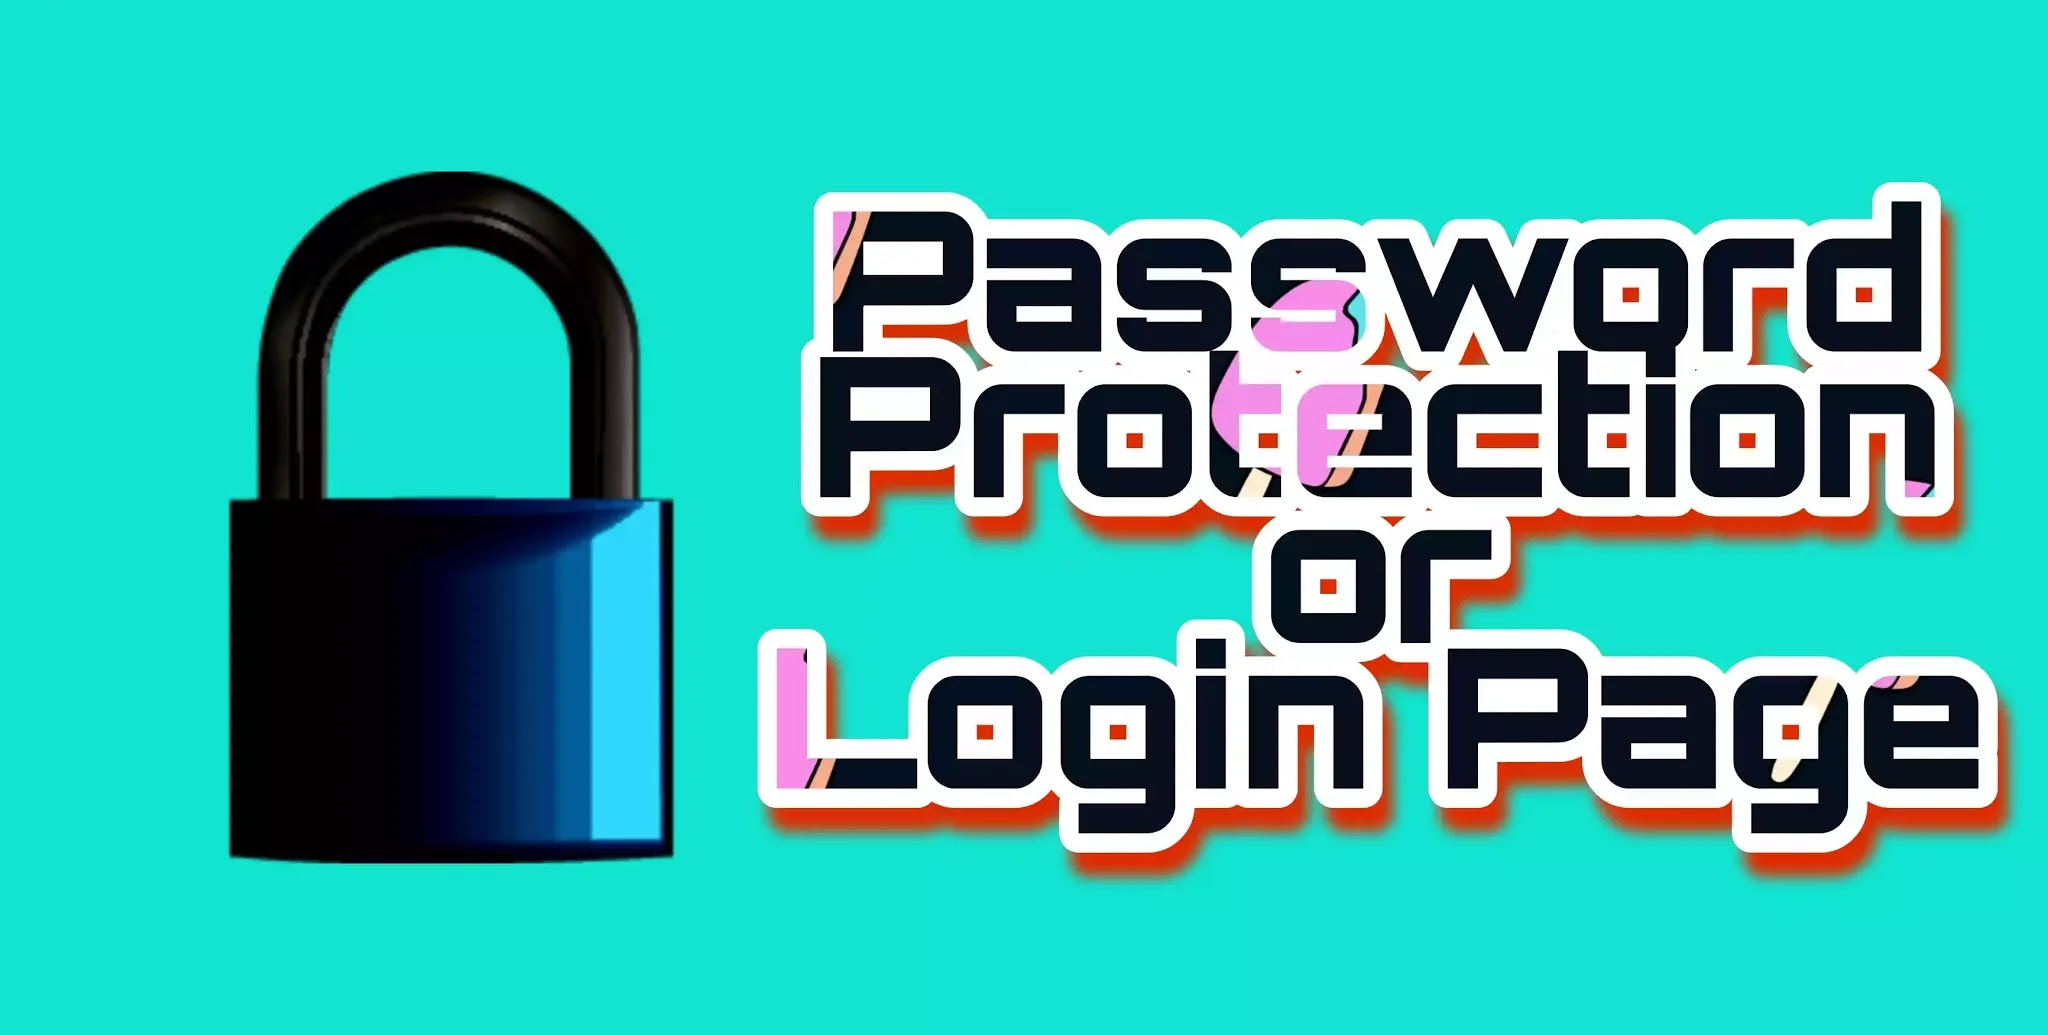 Create a login or password protection page for website?